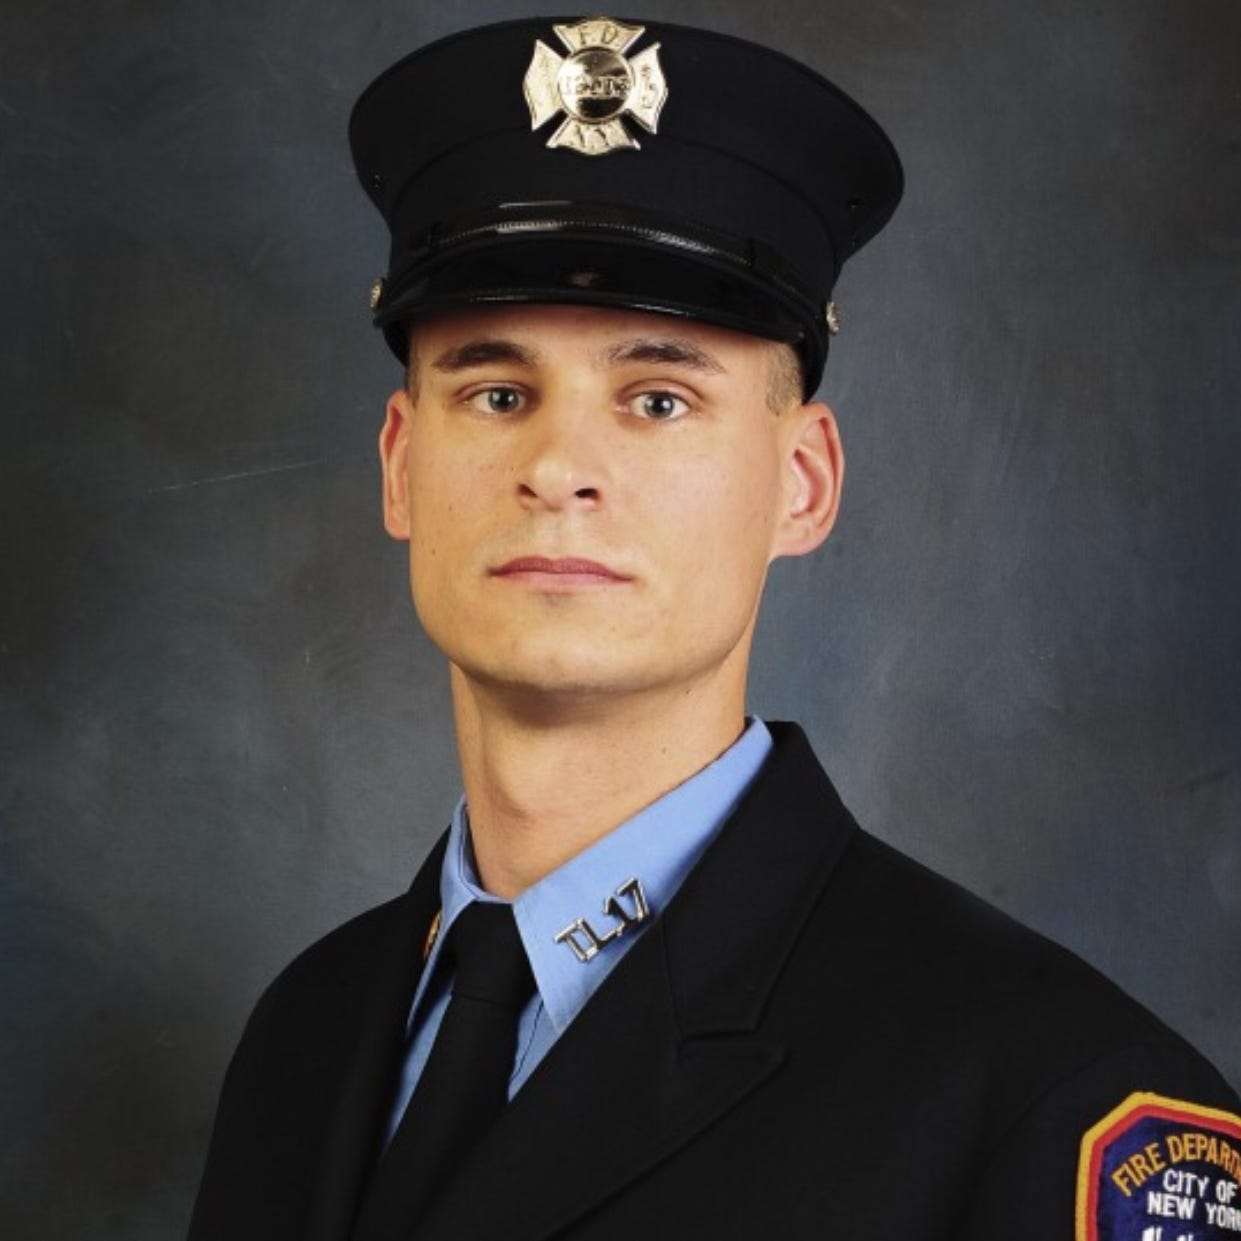 FDNY firefighter with Yonkers ties killed in Afghanistan while serving in Marines